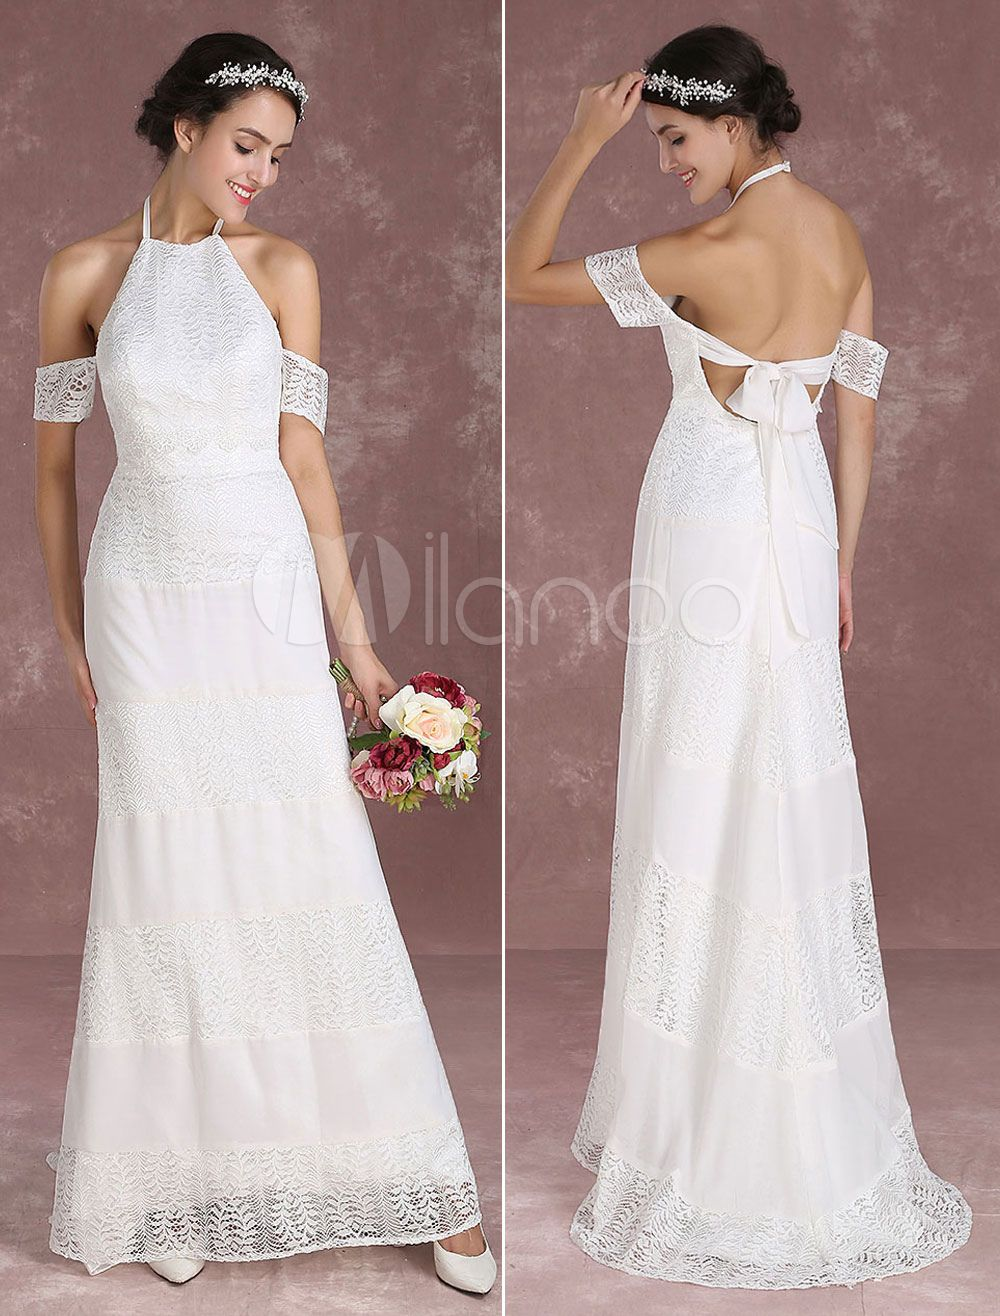 Summer wedding dresses boho lace mermaid bridal gown halter off